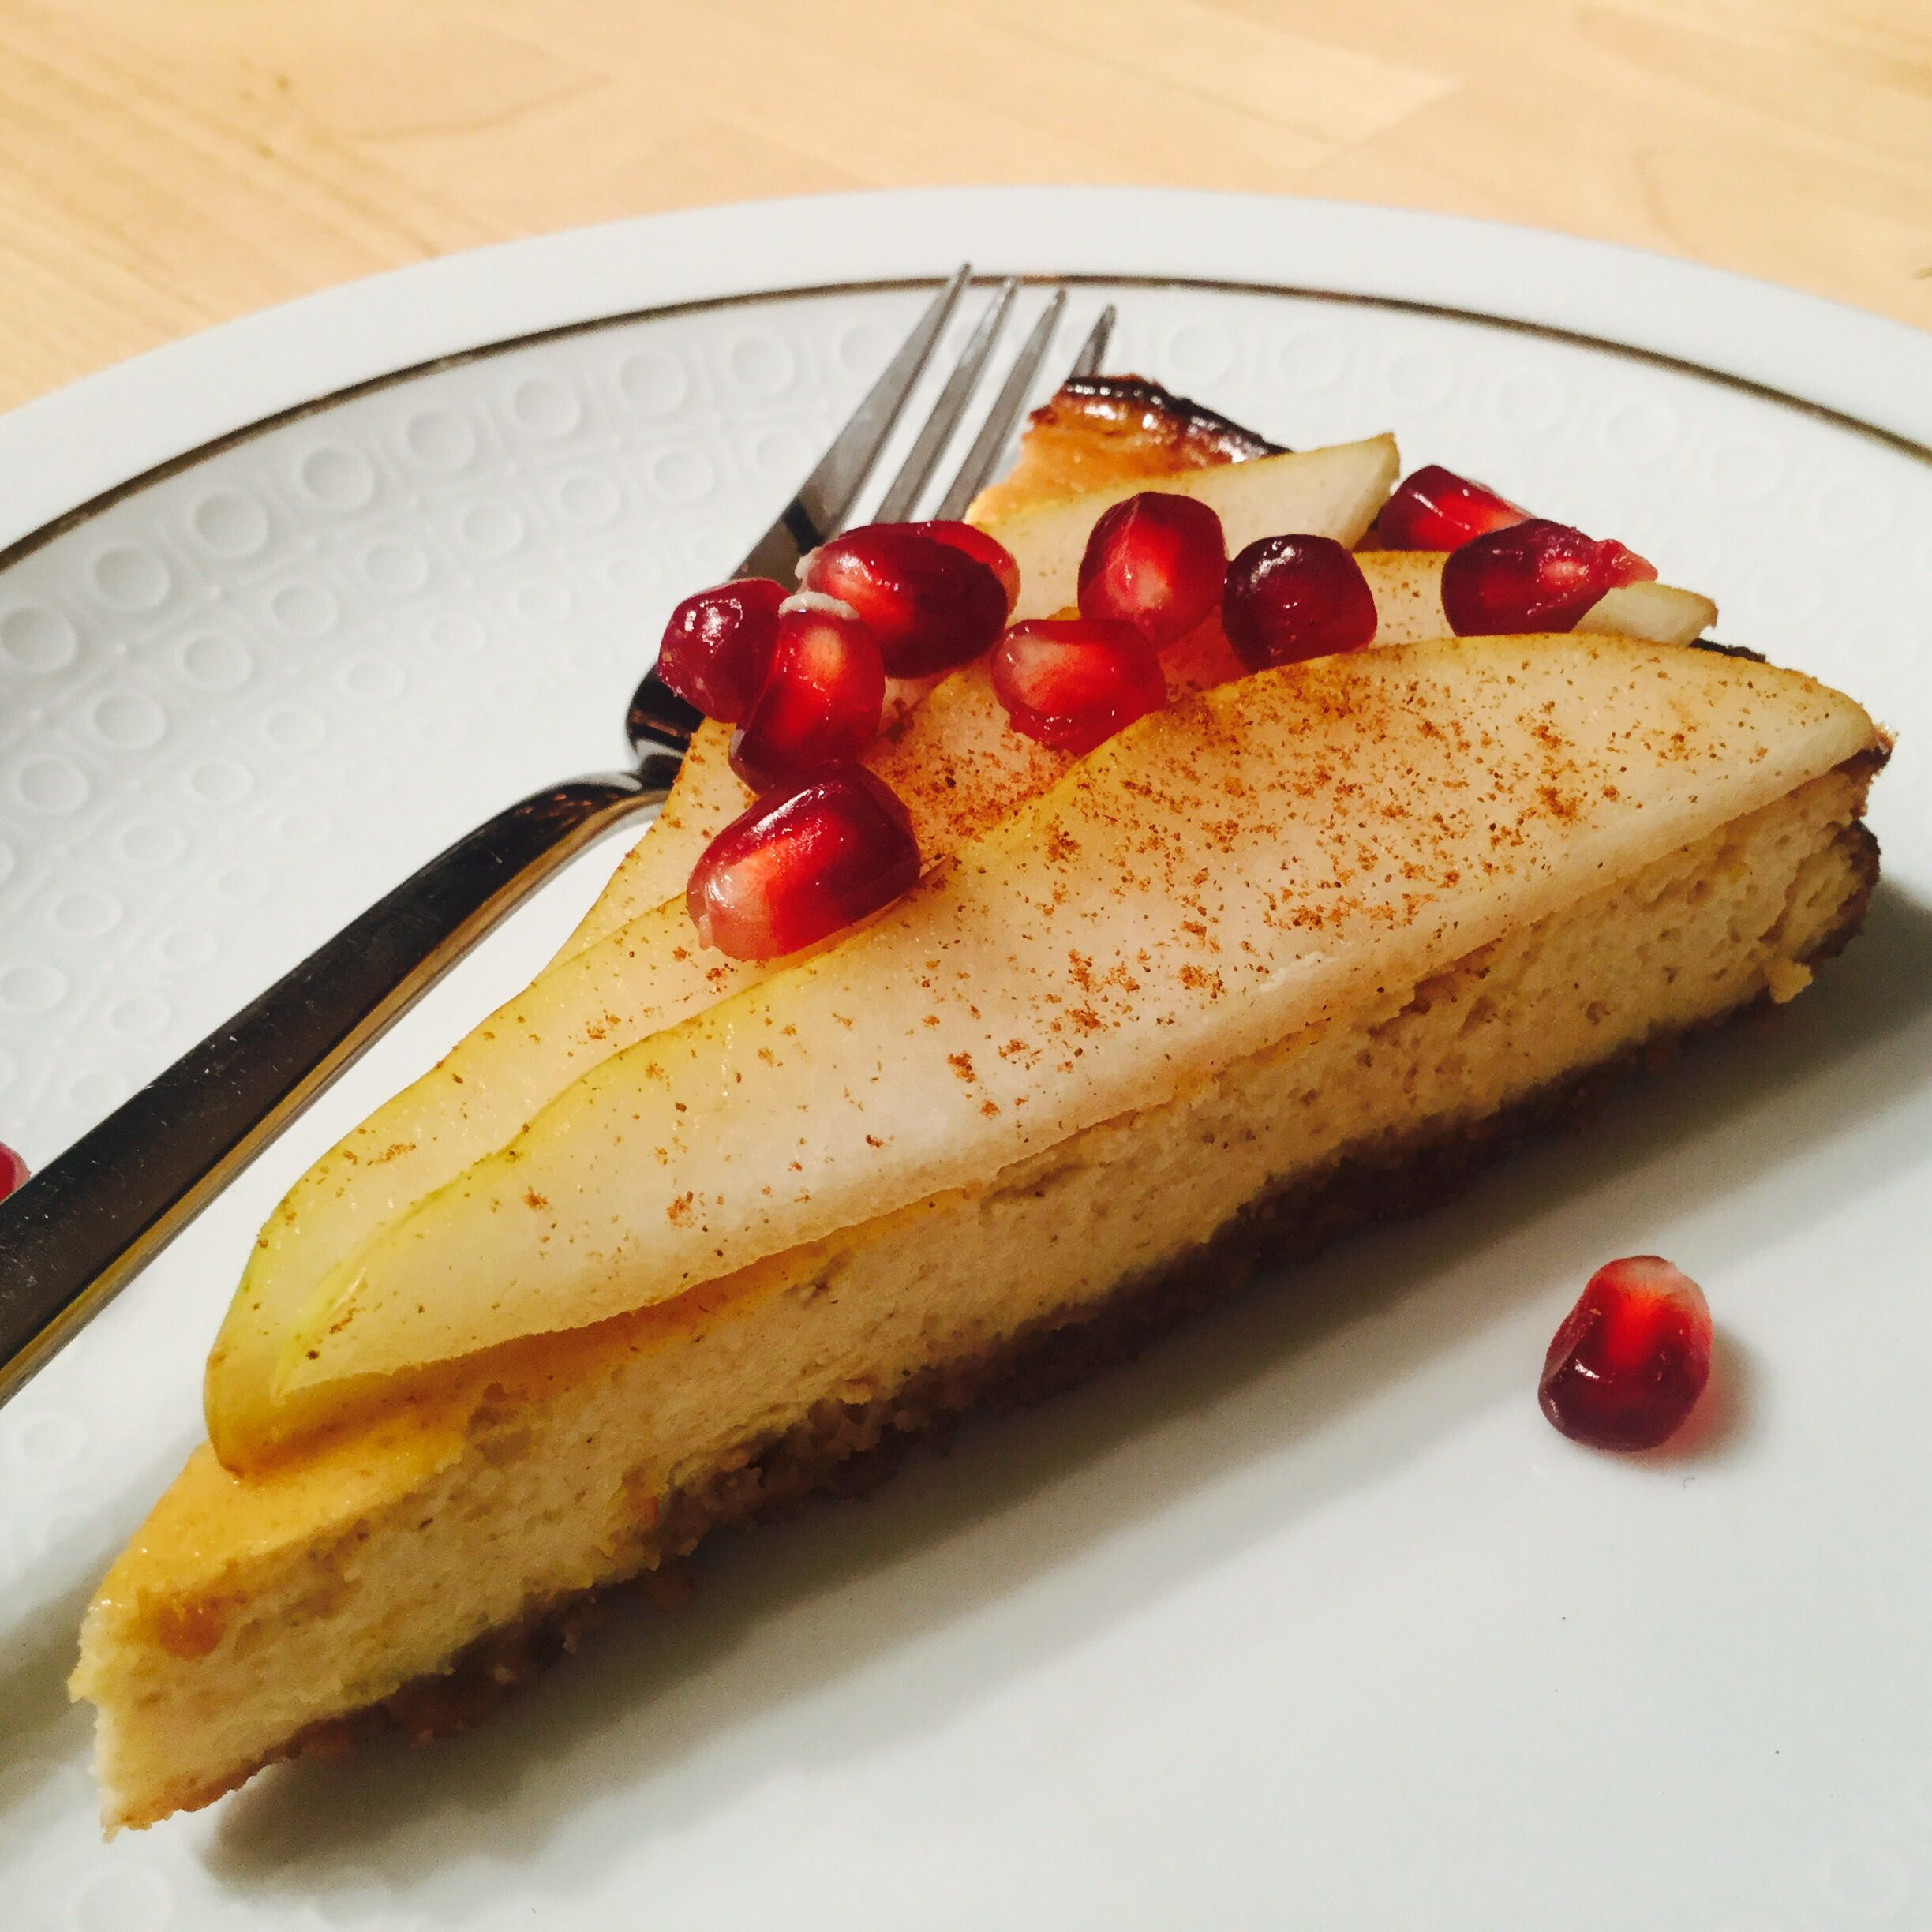 At dinner I mentioned to my family I had made cheesecake for dessert. Cheesecake! It is not like me to make a rich dessert, especially on a weeknight and they know it. My son, immediately suspic…